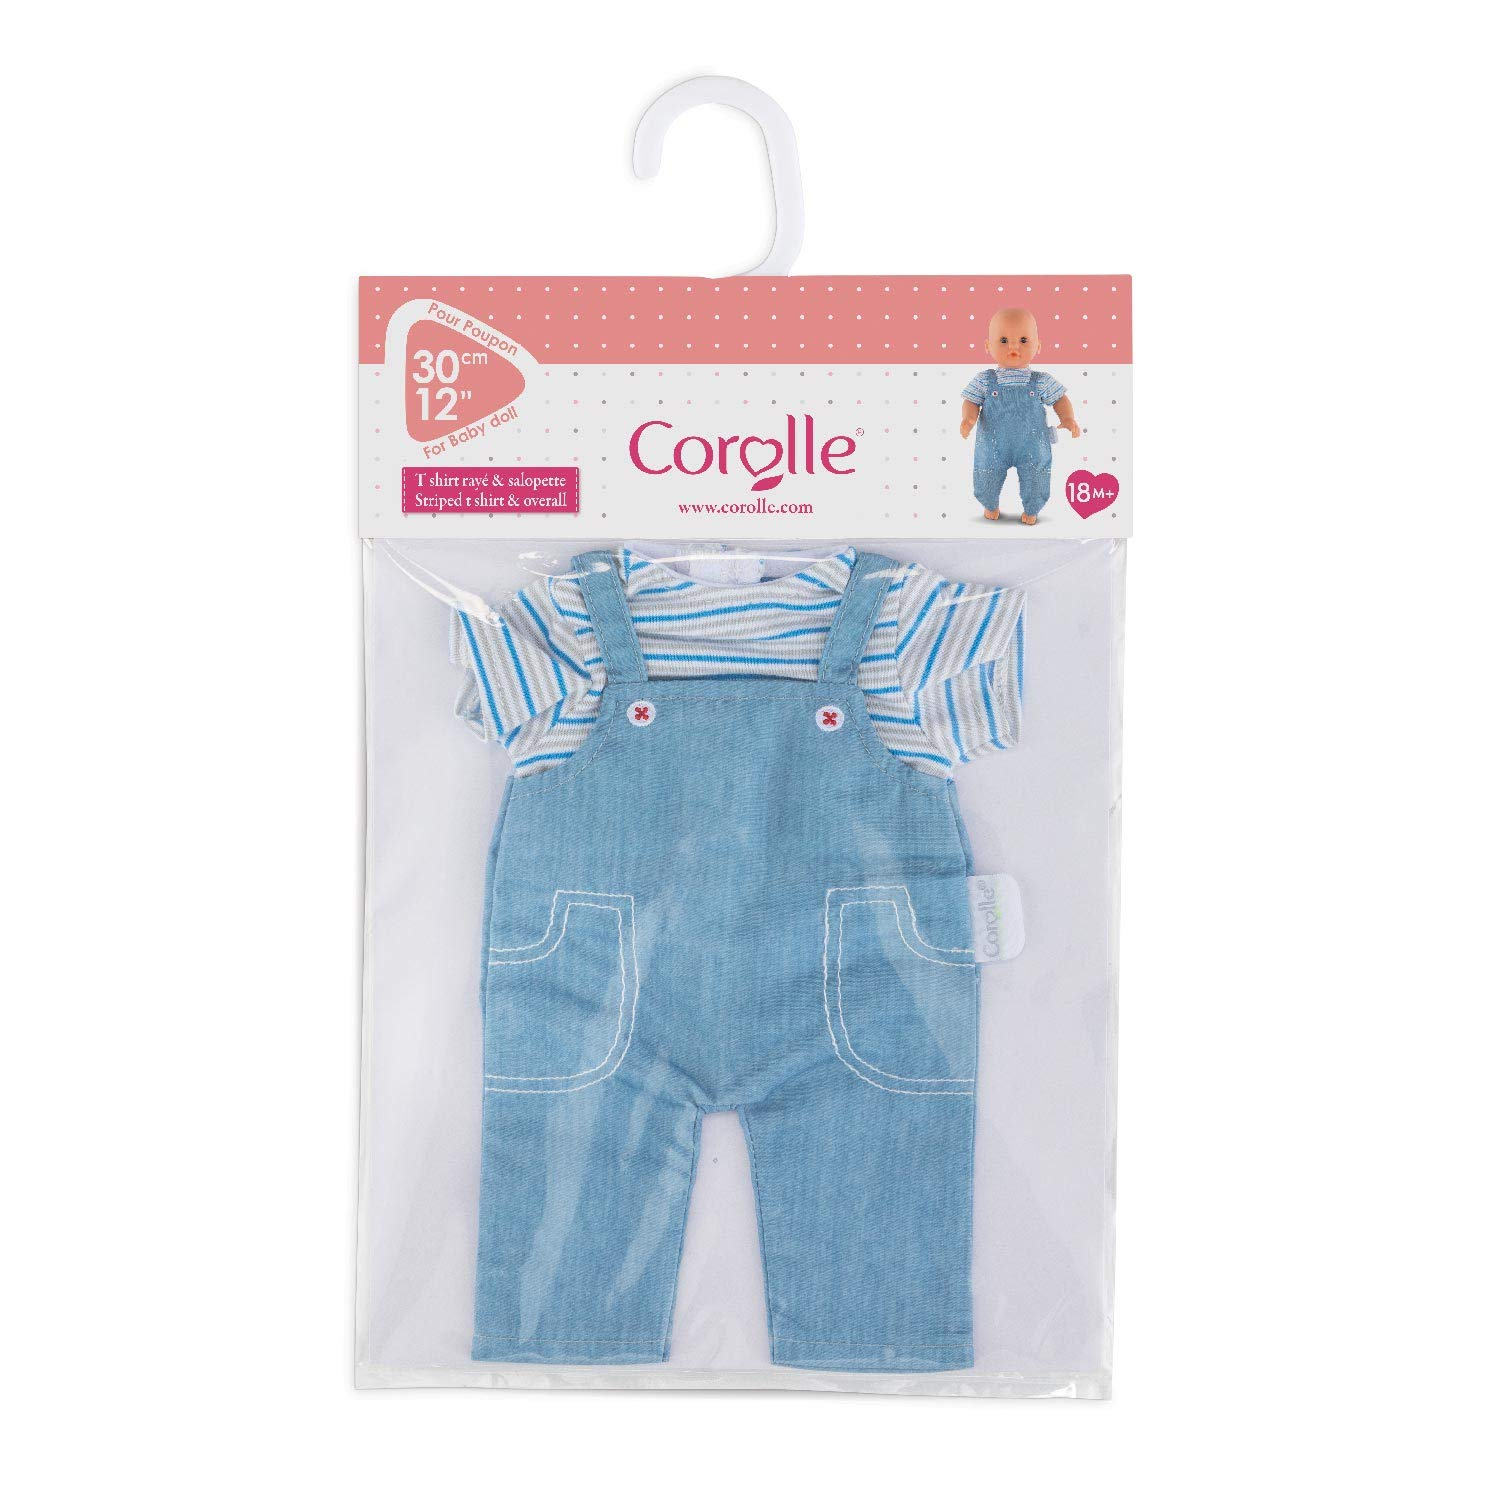 Corolle Mon Premier Poupon 12 Striped T-Shirt /& Overalls Toy Baby Doll